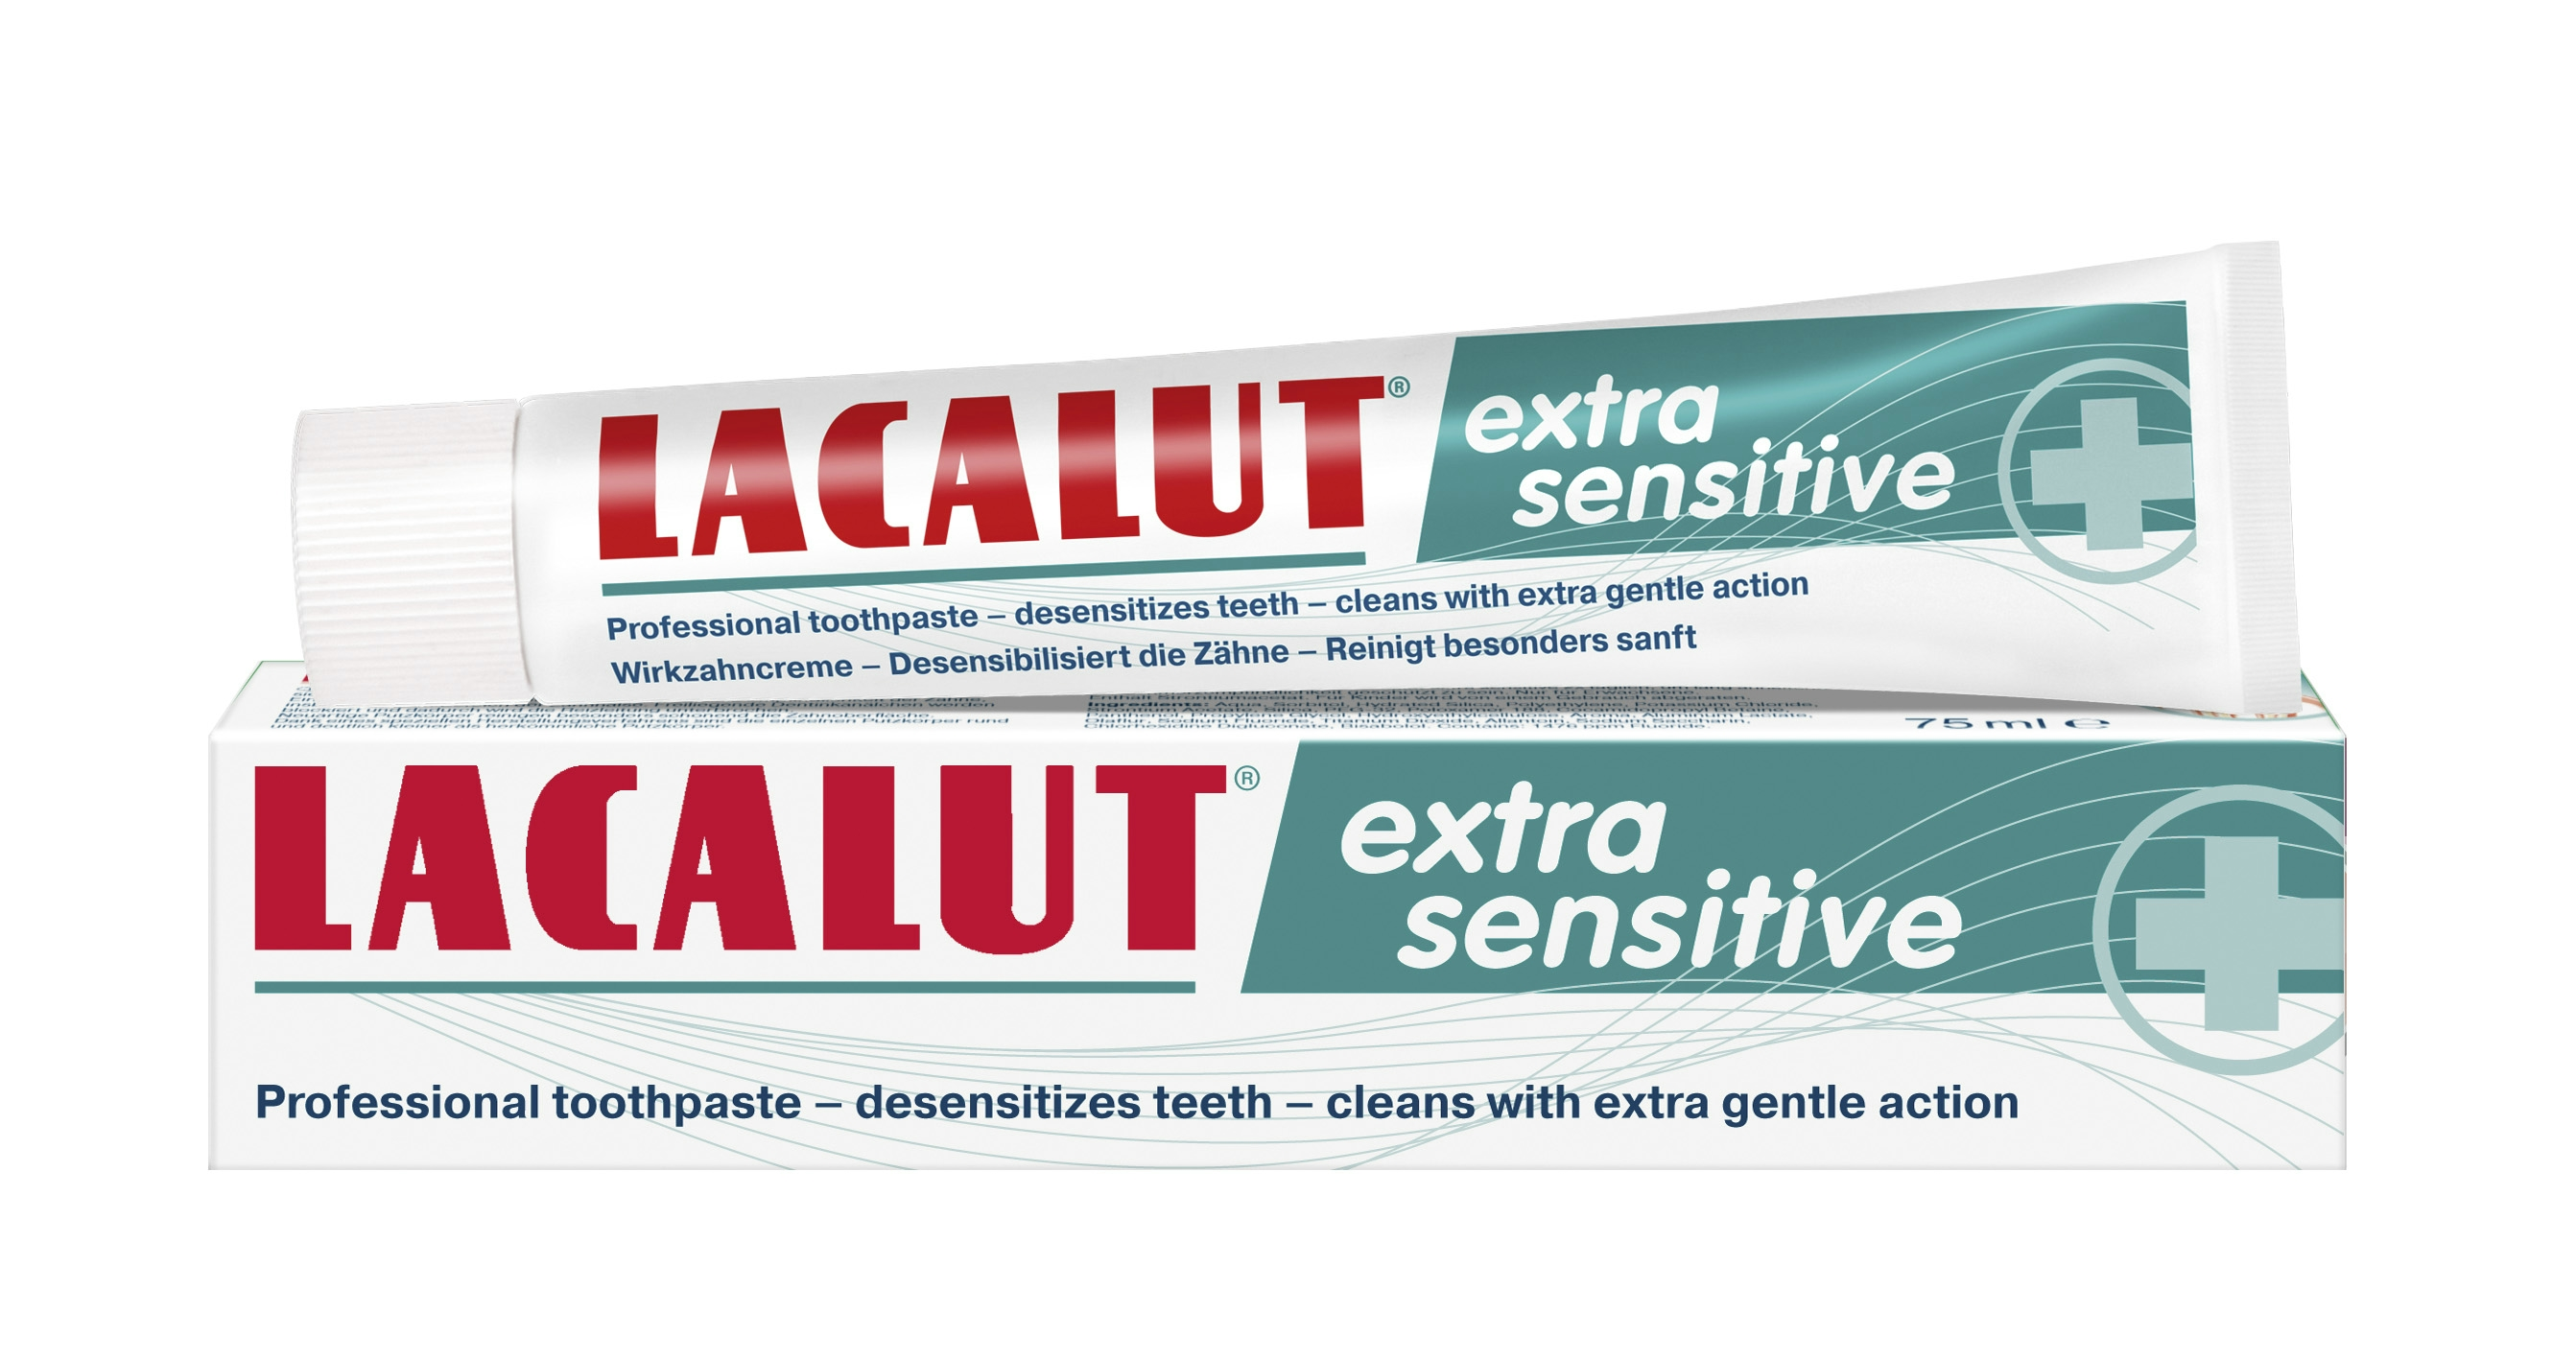 Lacalut extra sensitive fogkrém 75 ml